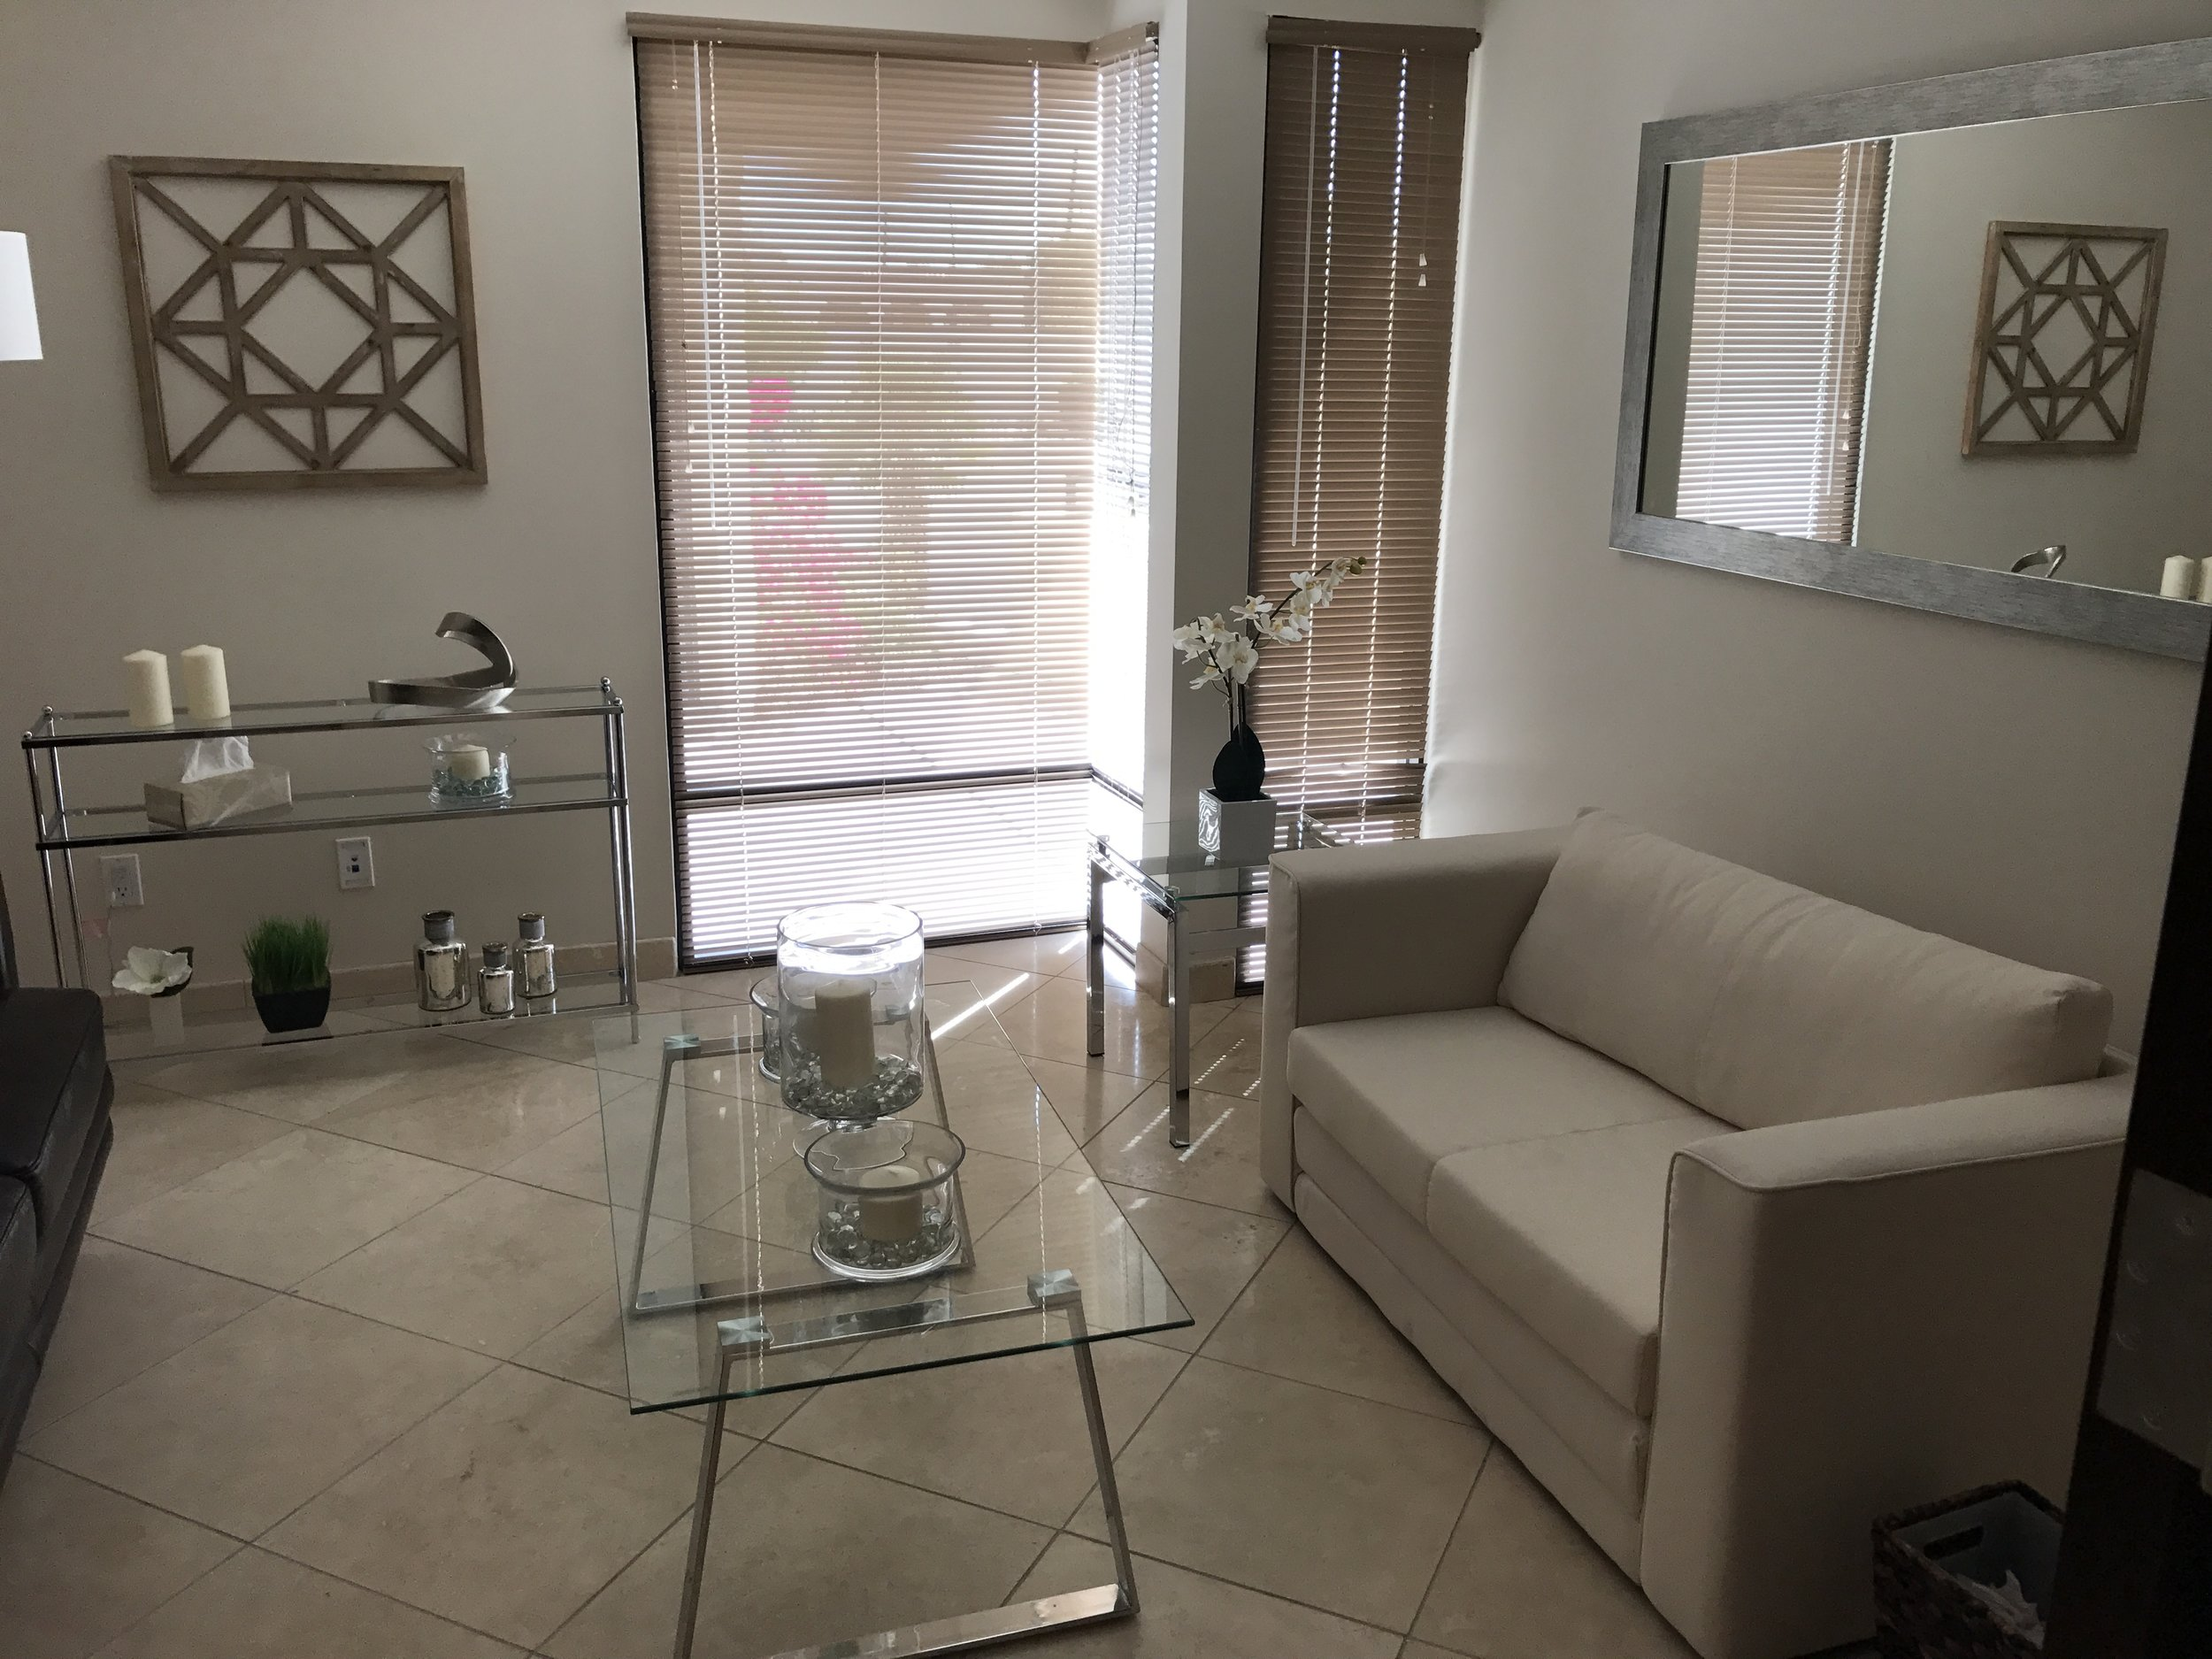 Seating area with couches and glass tables